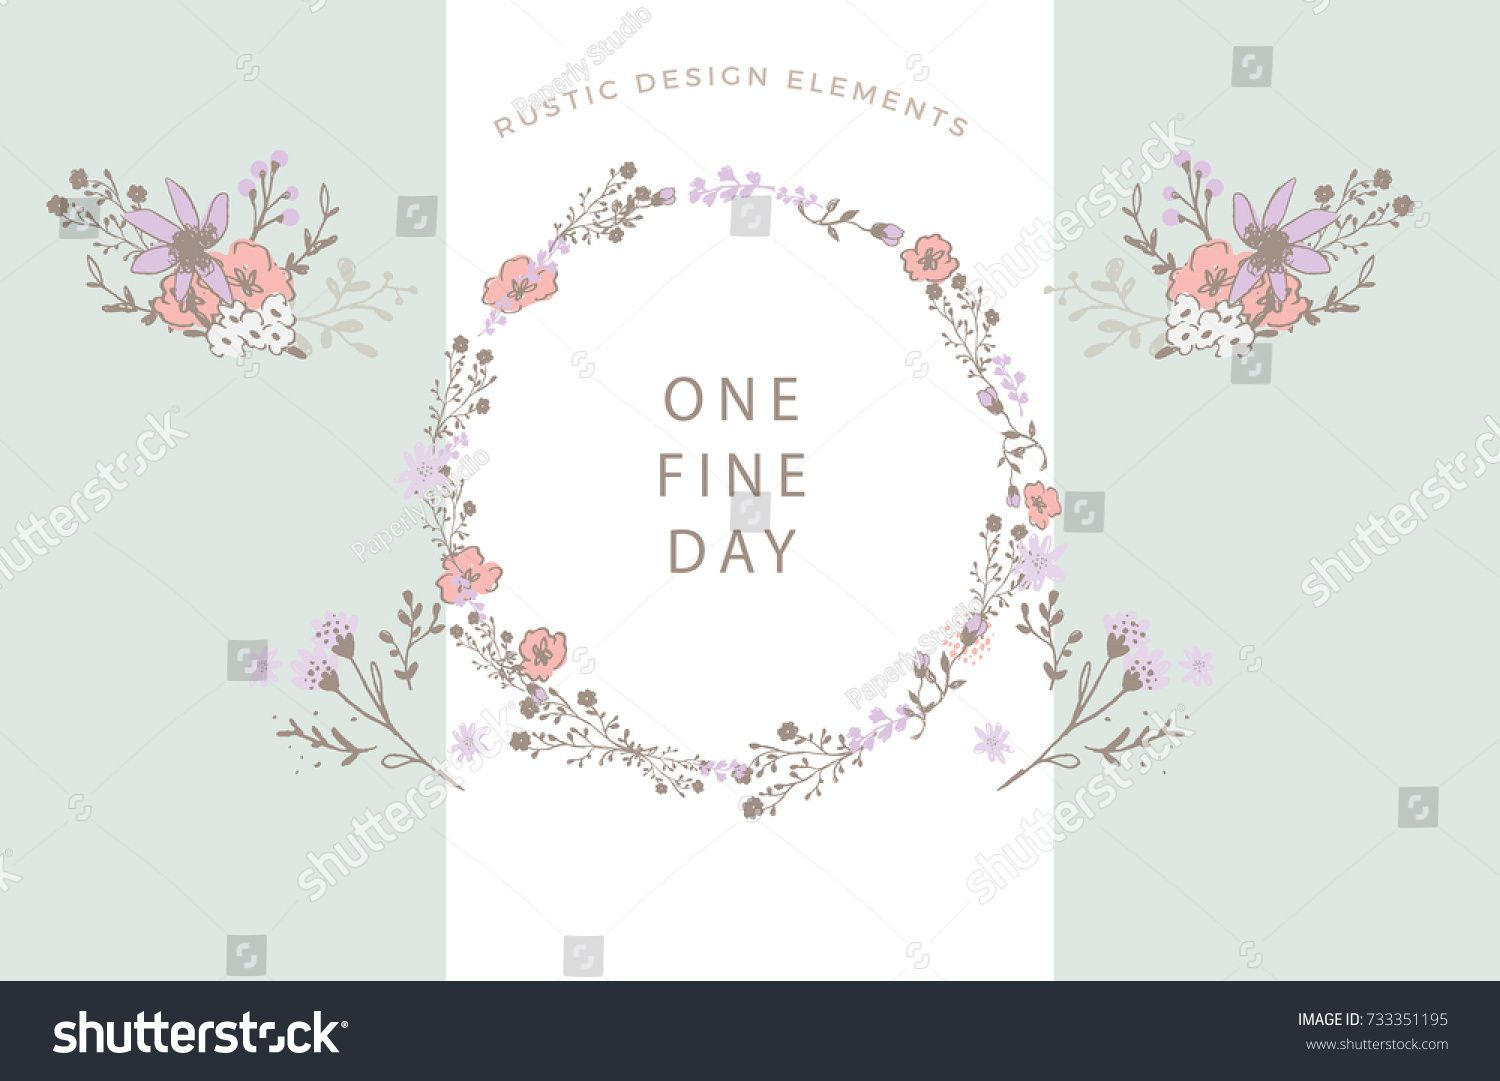 Violet And Brown Floral Elements Vector Poster With Rustic